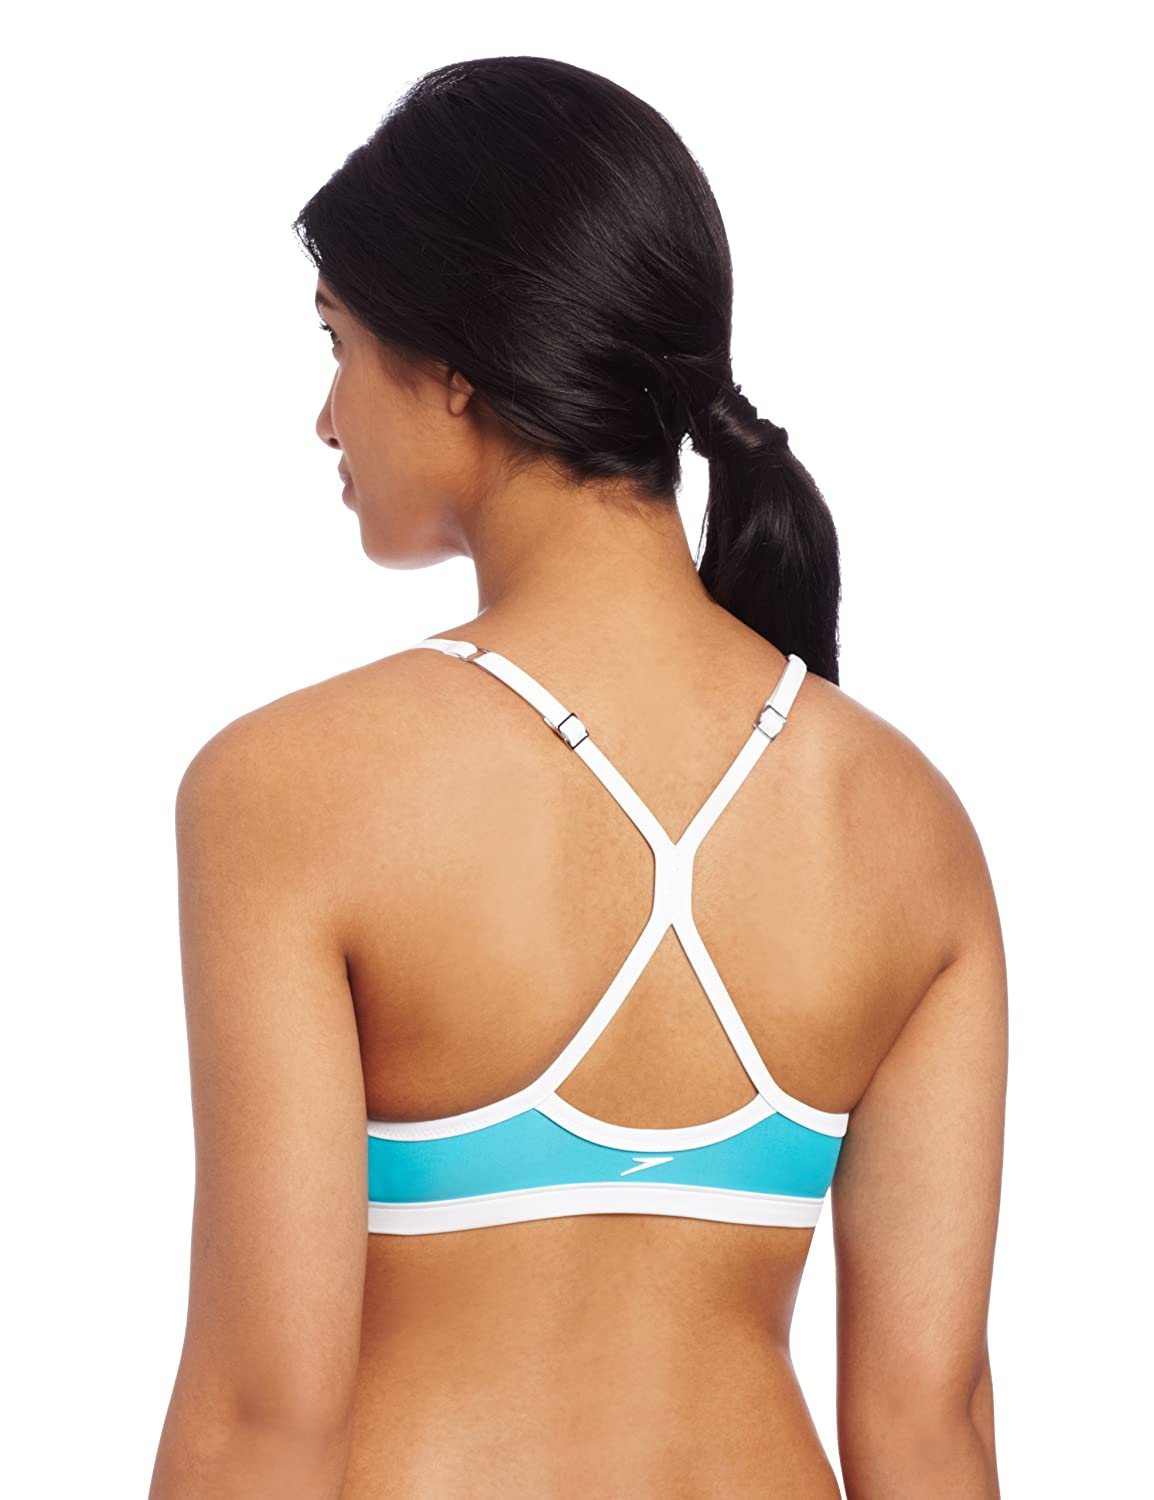 Amazon.com: Speedo Womens Active Keyhole Swimsuit Top: Sports & Outdoors